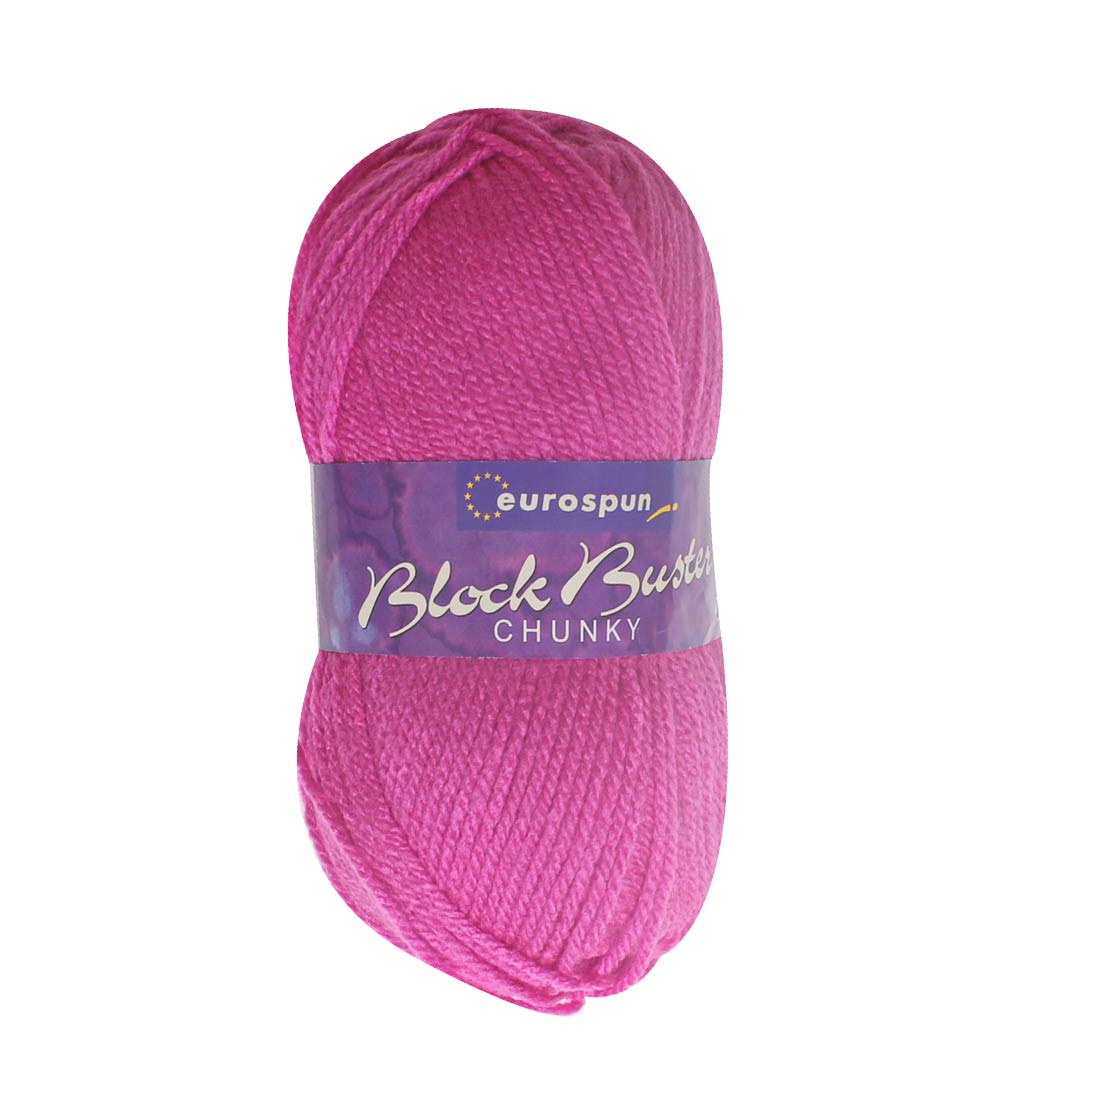 Eurospun Blockbuster Chunky Dolly Pink 524